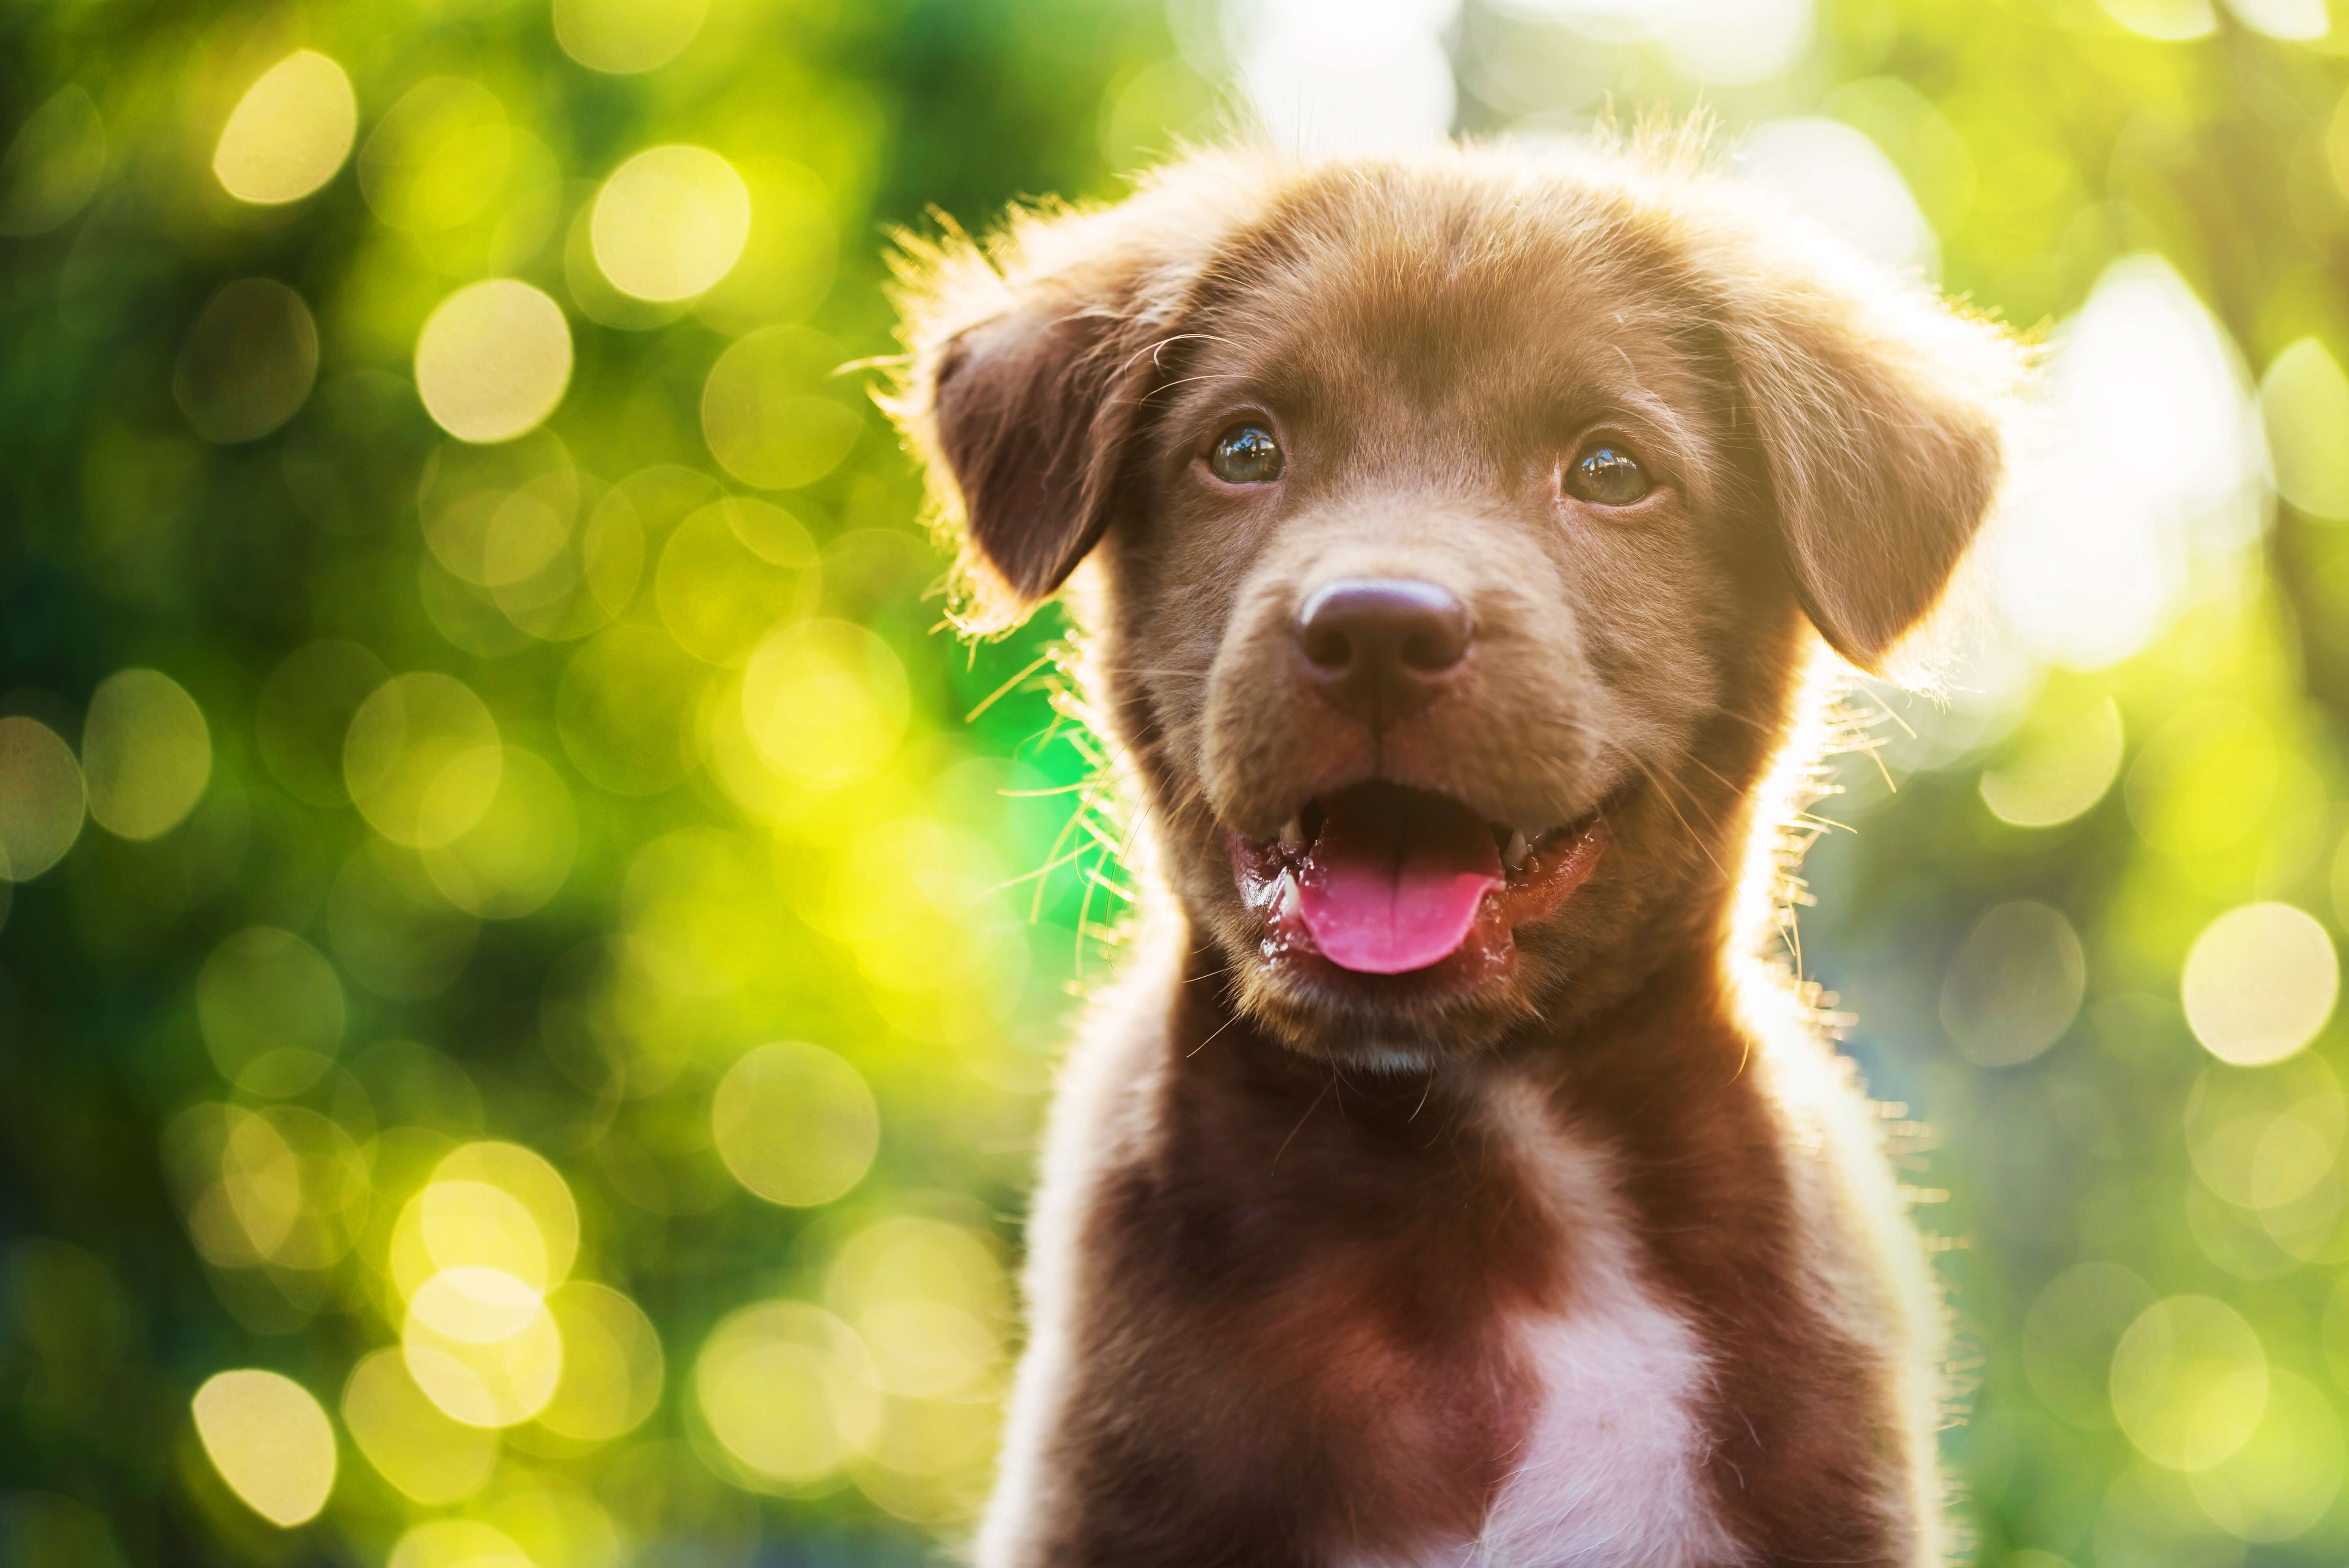 Ashwagandha for Dogs can help dogs manage normal stress.